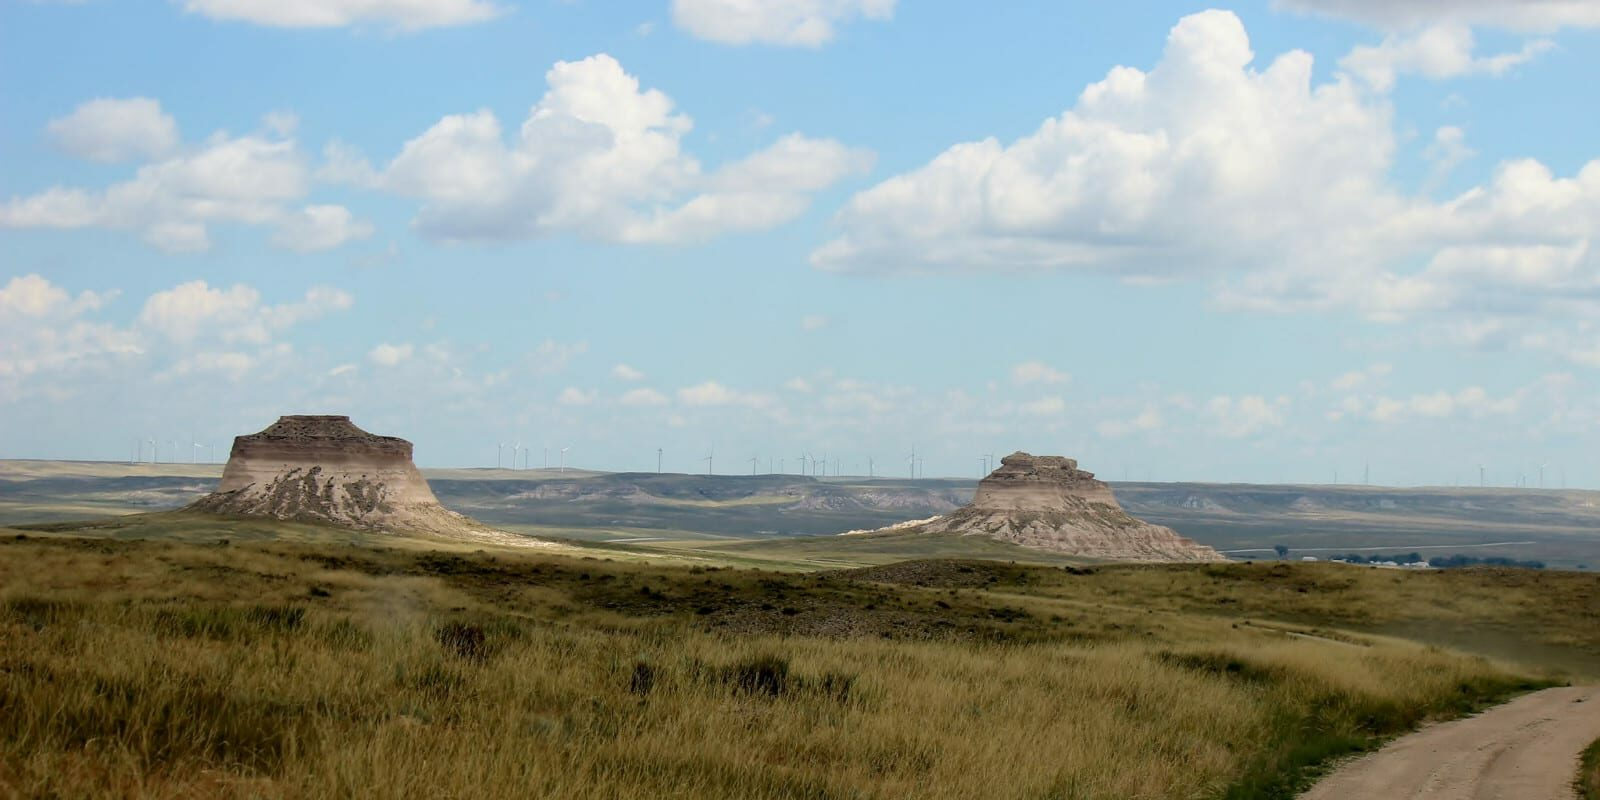 Image of Pawnee Buttes in Colorado on a partially cloudy day